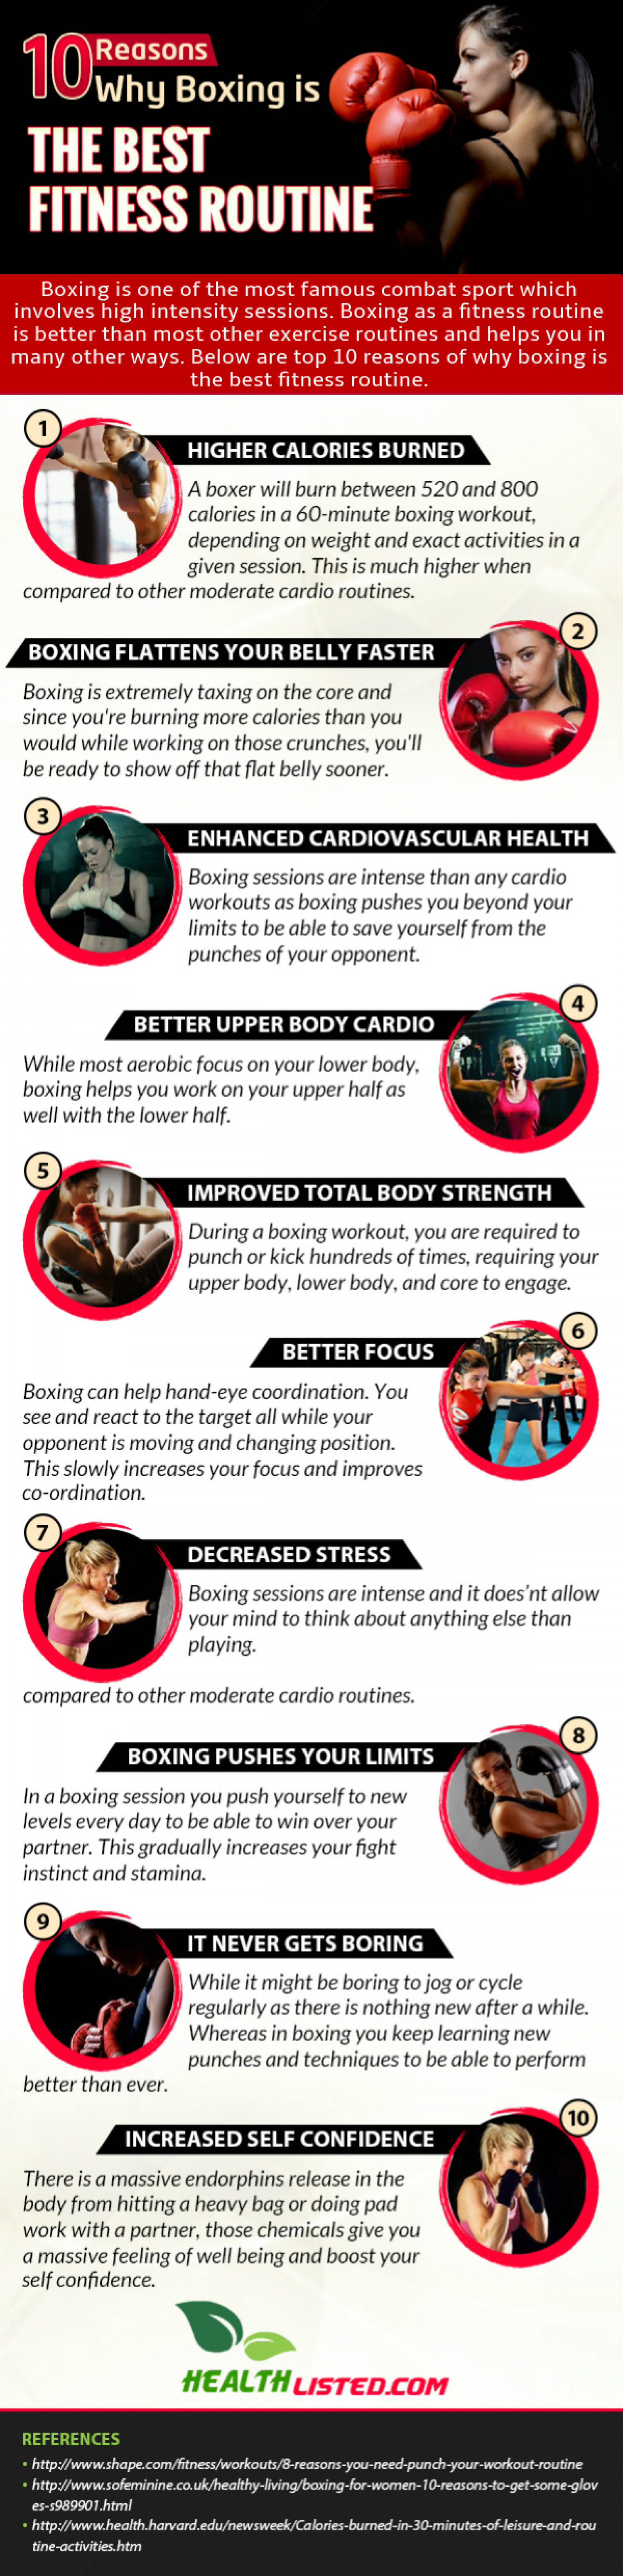 10 Reasons Why Boxing is the Best Fitness Routine Infographic